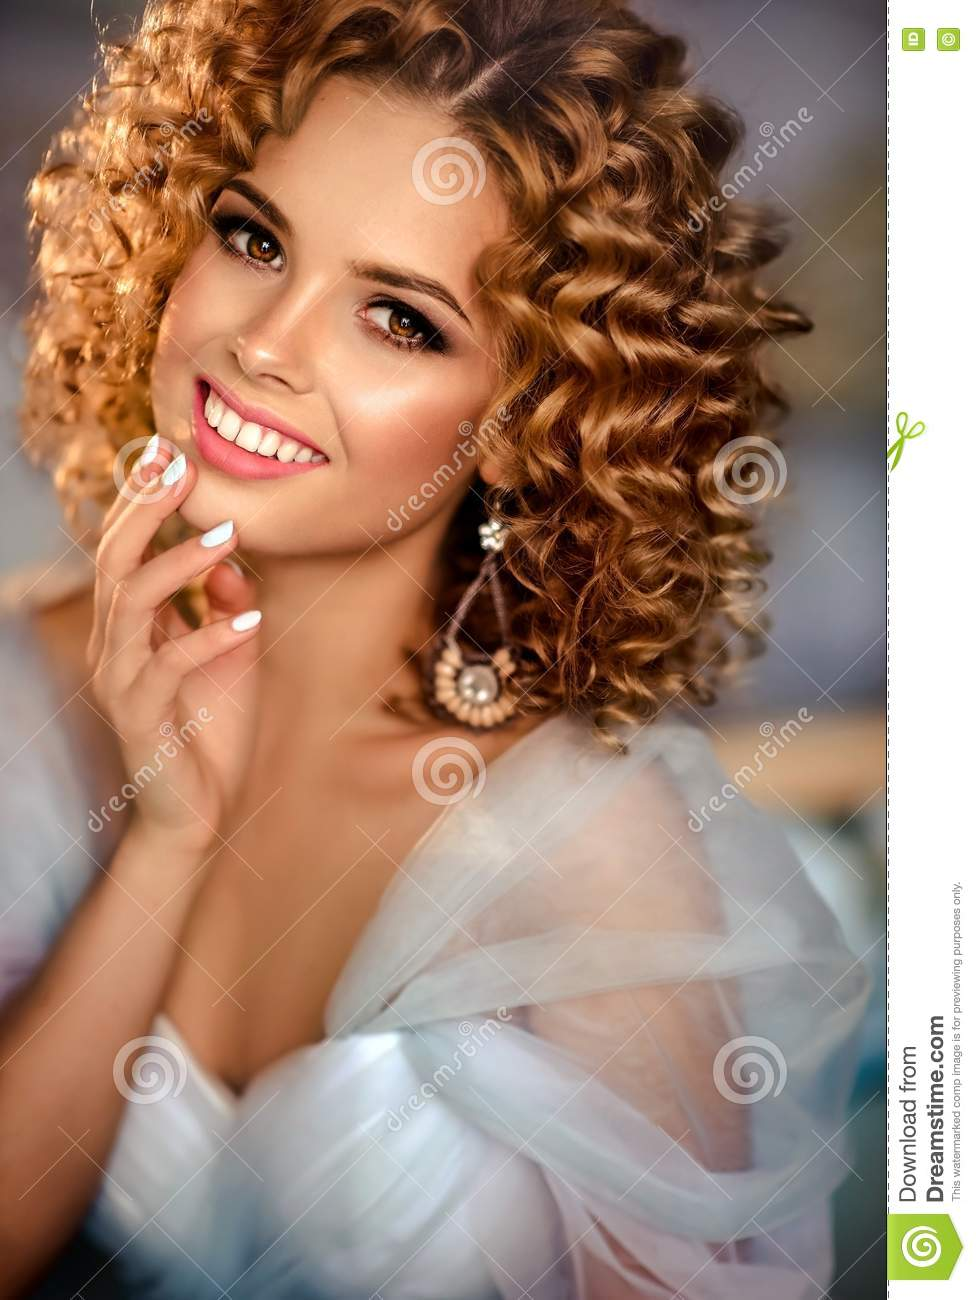 Girl Model With Dense, Curly Hair, Dressed In Evening Gown. Stock ...